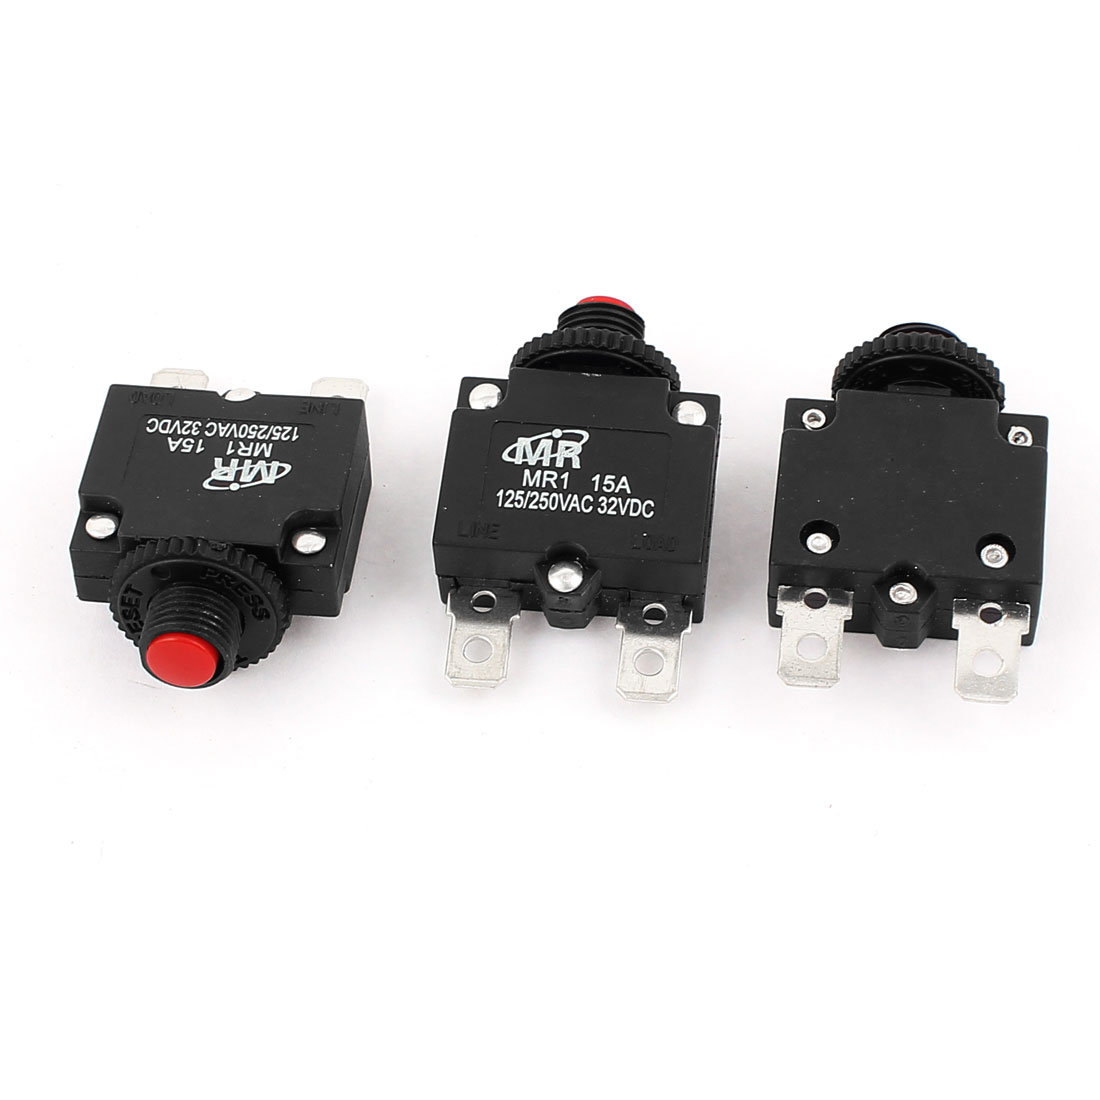 AC 125V/250V 15A Air Compressor Thermal Overload Protector Circuit Breaker 3Pcs